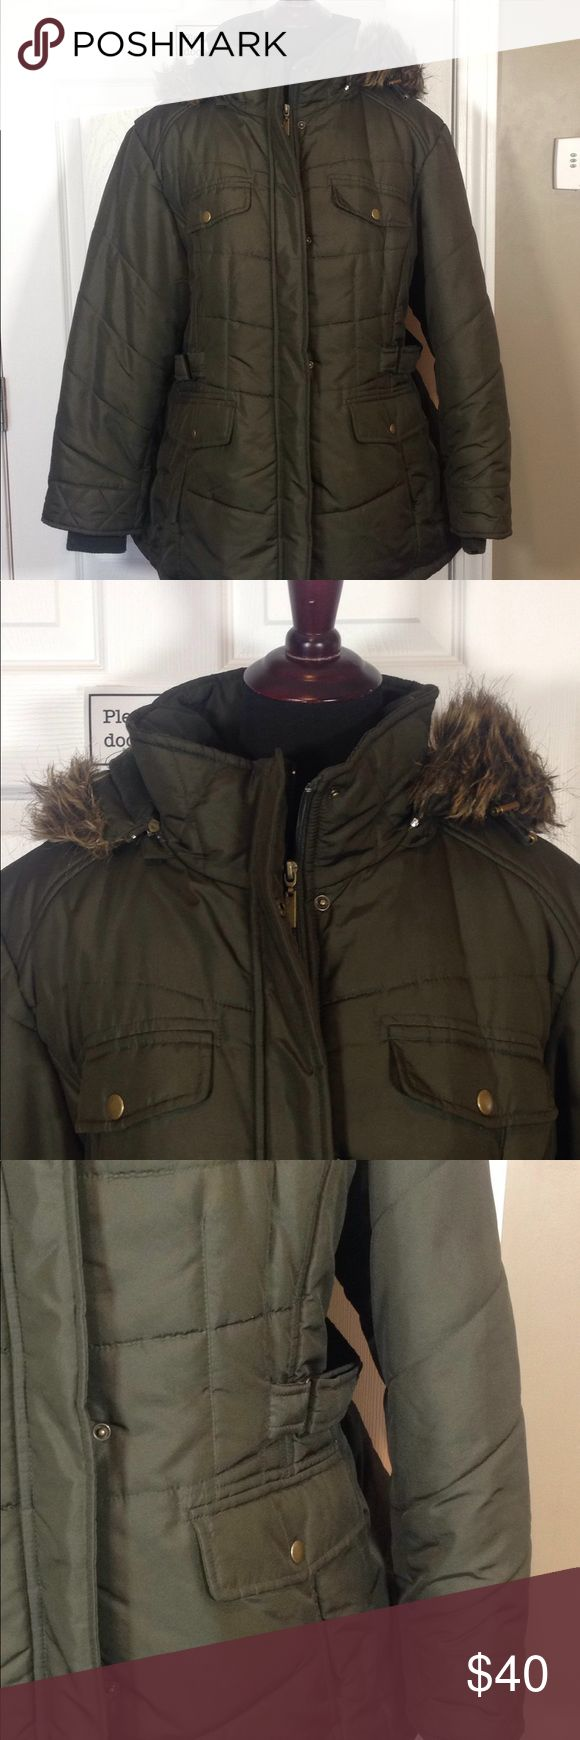 Plus size down coat olive / fur hood 2X Great condition olive green warm down coat. Zip front and snap. Cinches on either side of the waist. Super warm and removable hood weather tamer Jackets & Coats Puffers